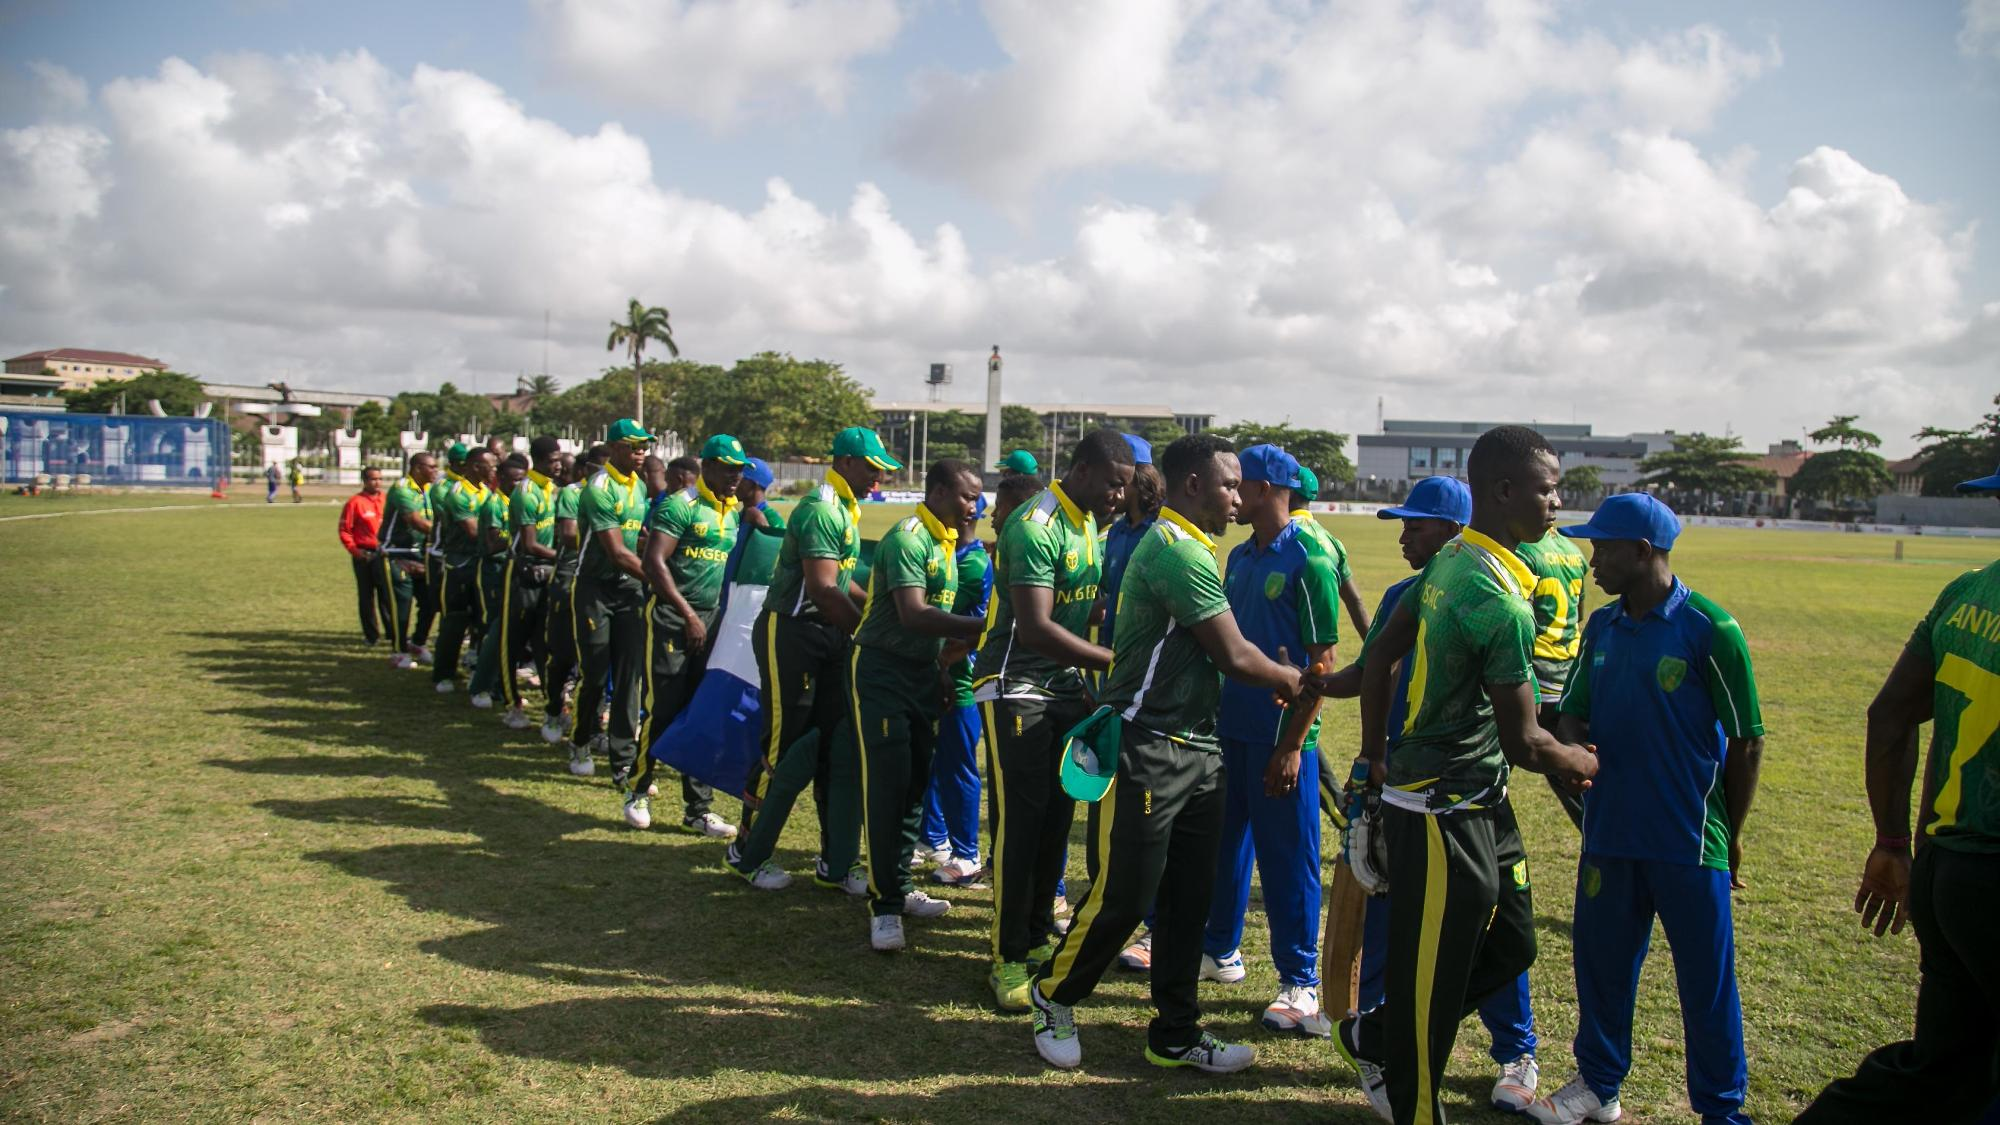 The players of Nigeria and Sierra Leone shake hands before their match